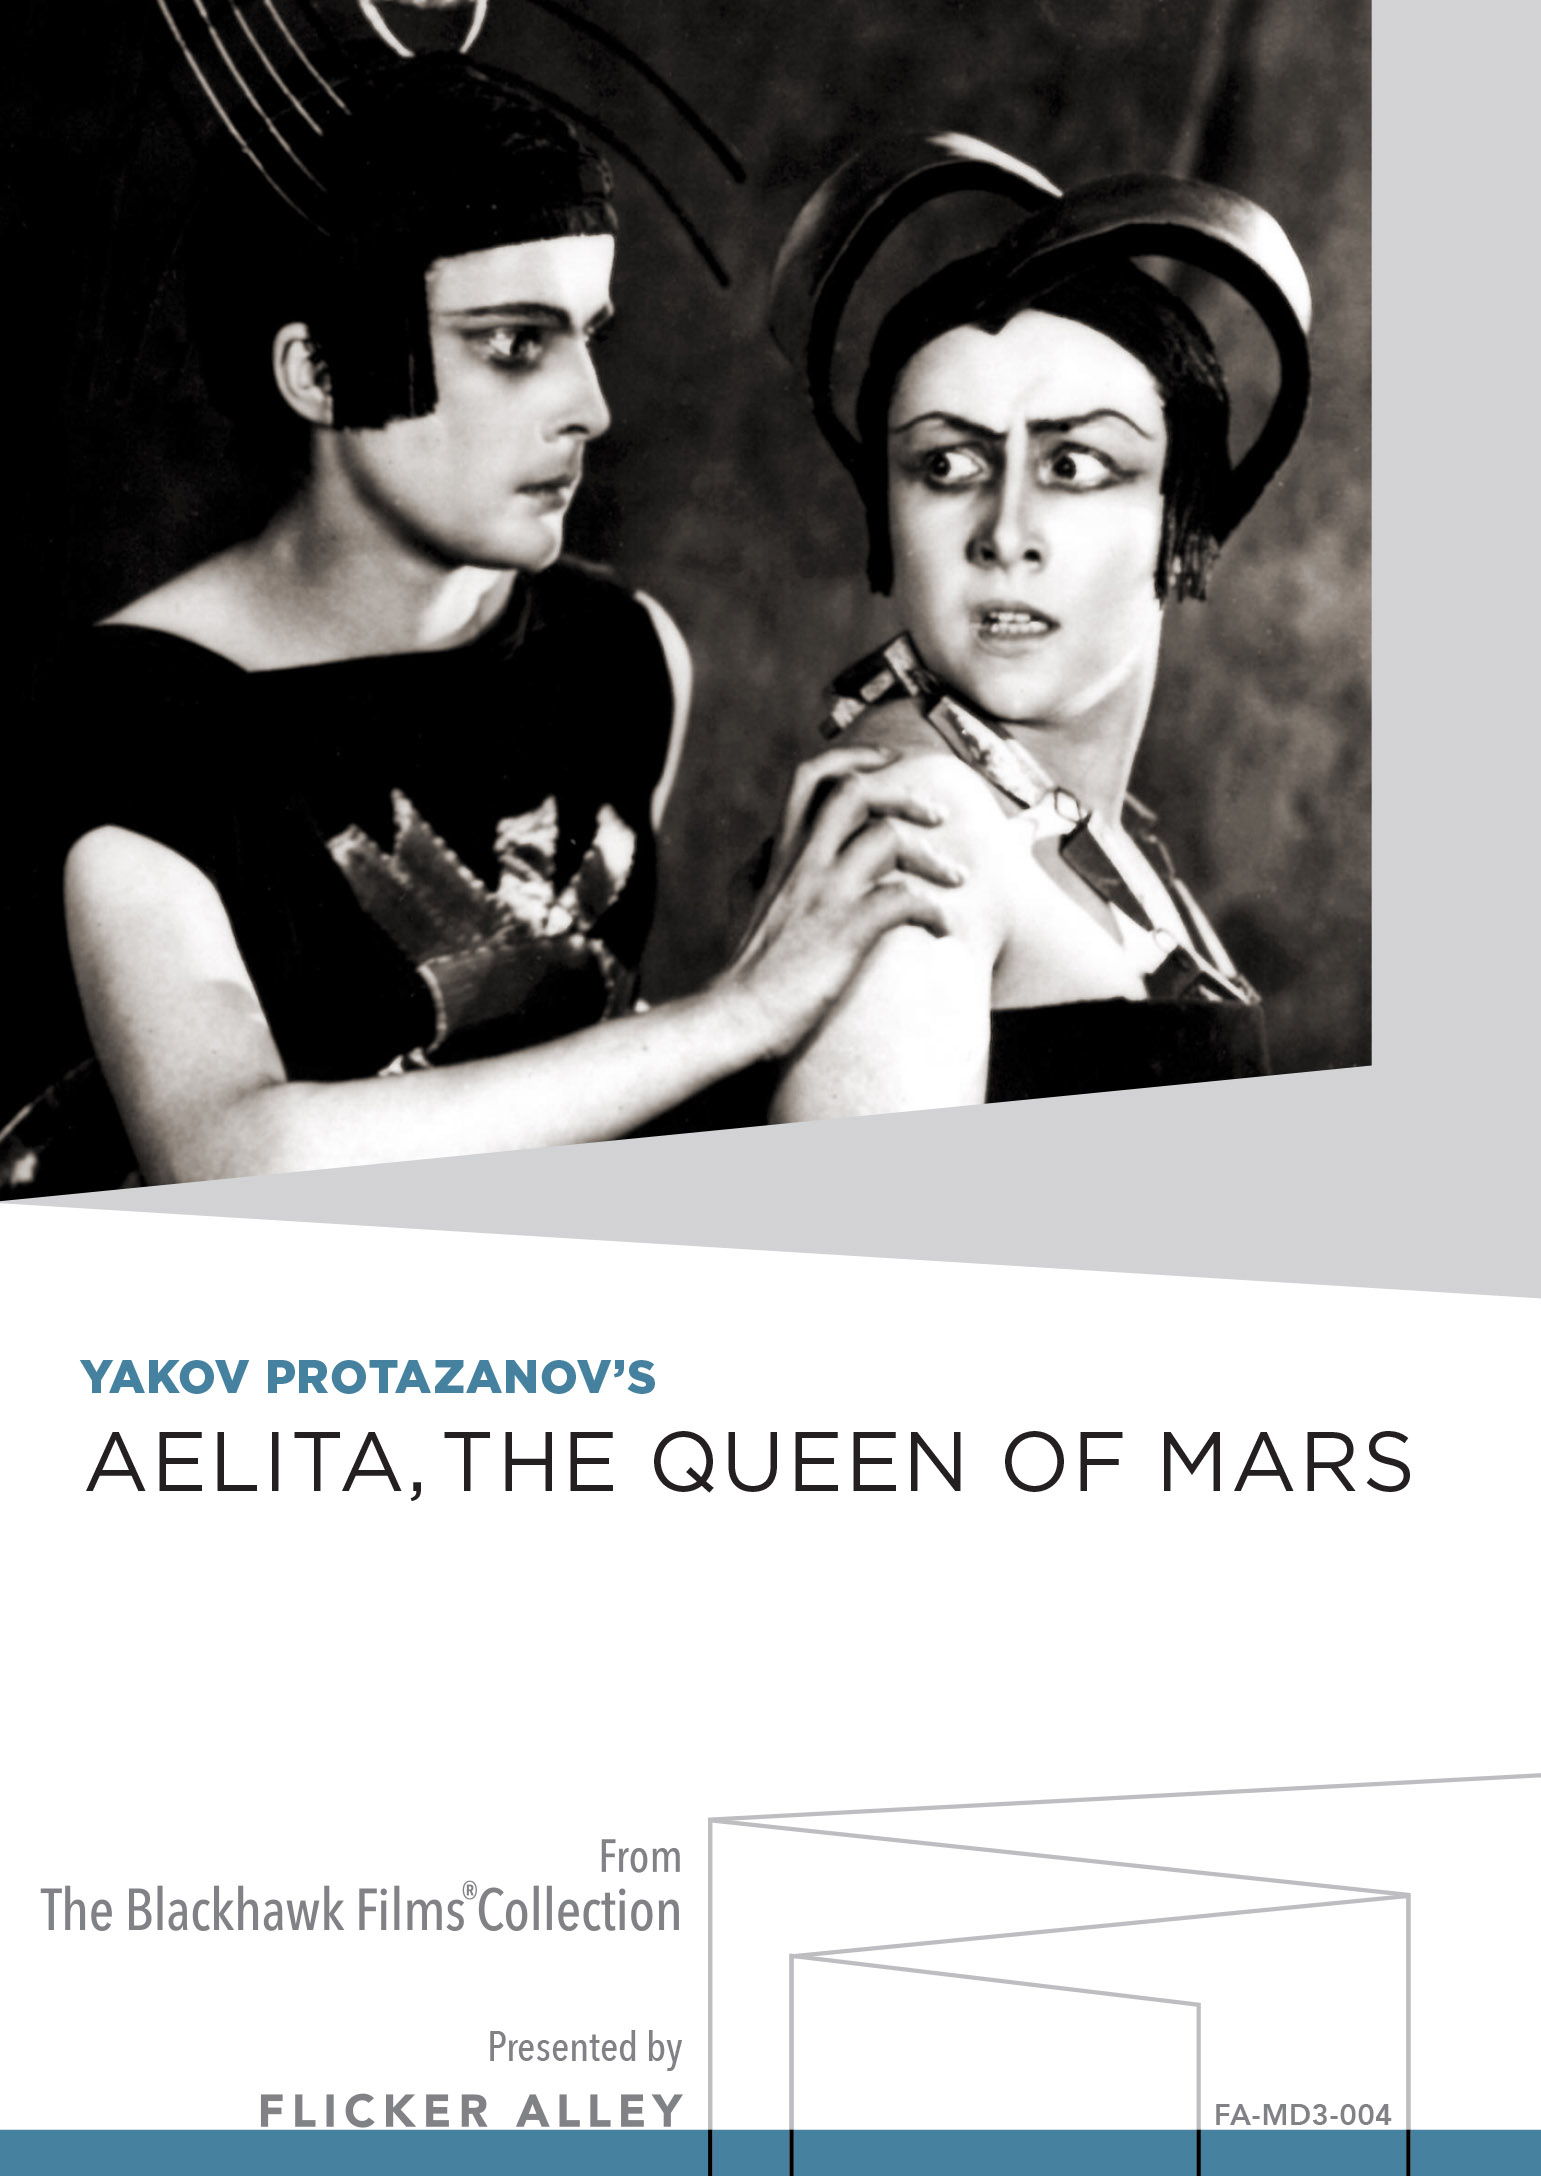 Aelita The Queen of Mars MOD DVD Flicker Alley Silent Film Blu-ray DVD Stream buy MOD